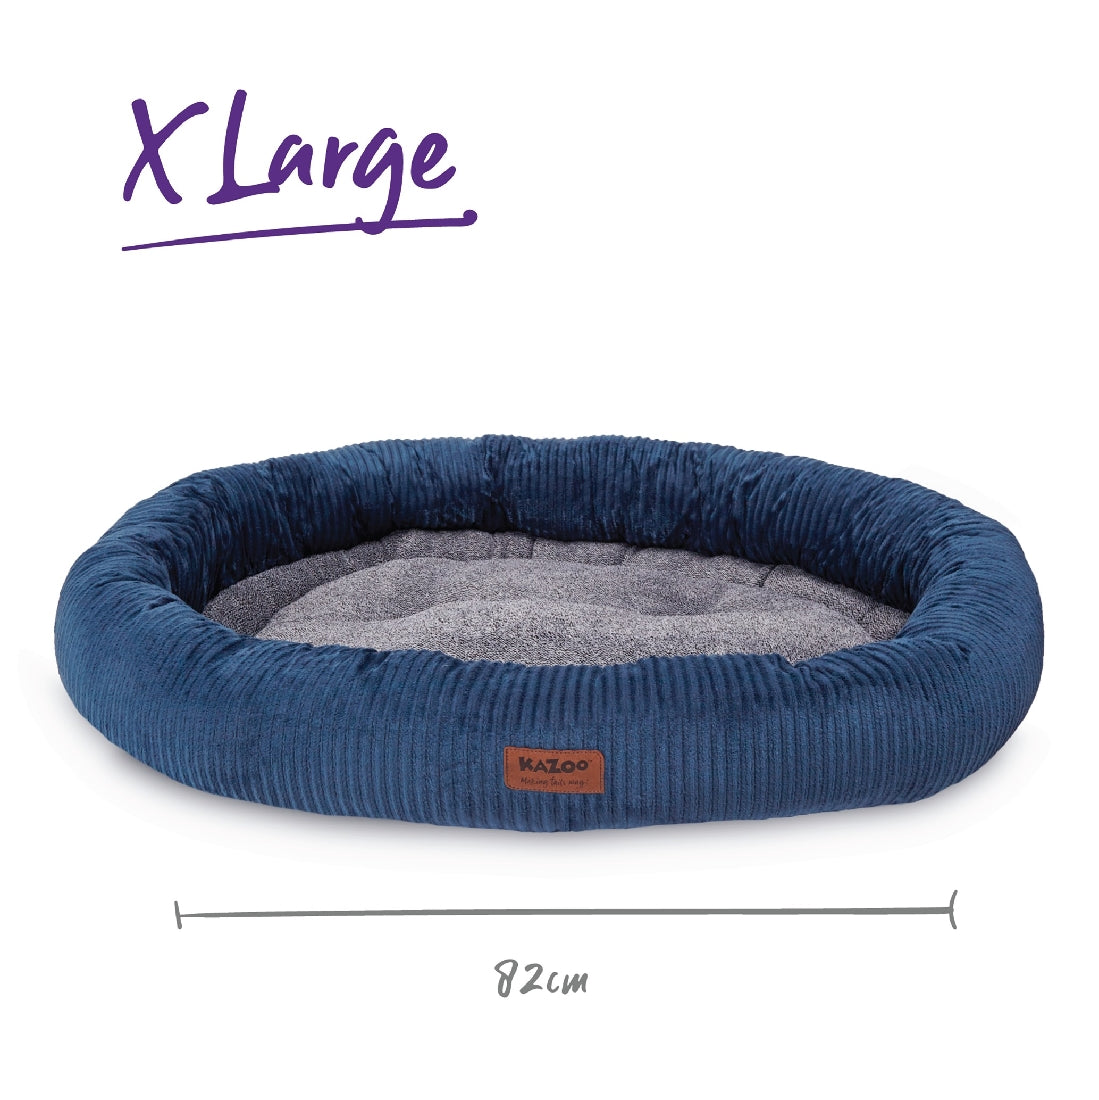 Kazoo Gumnut Bed Extra Large